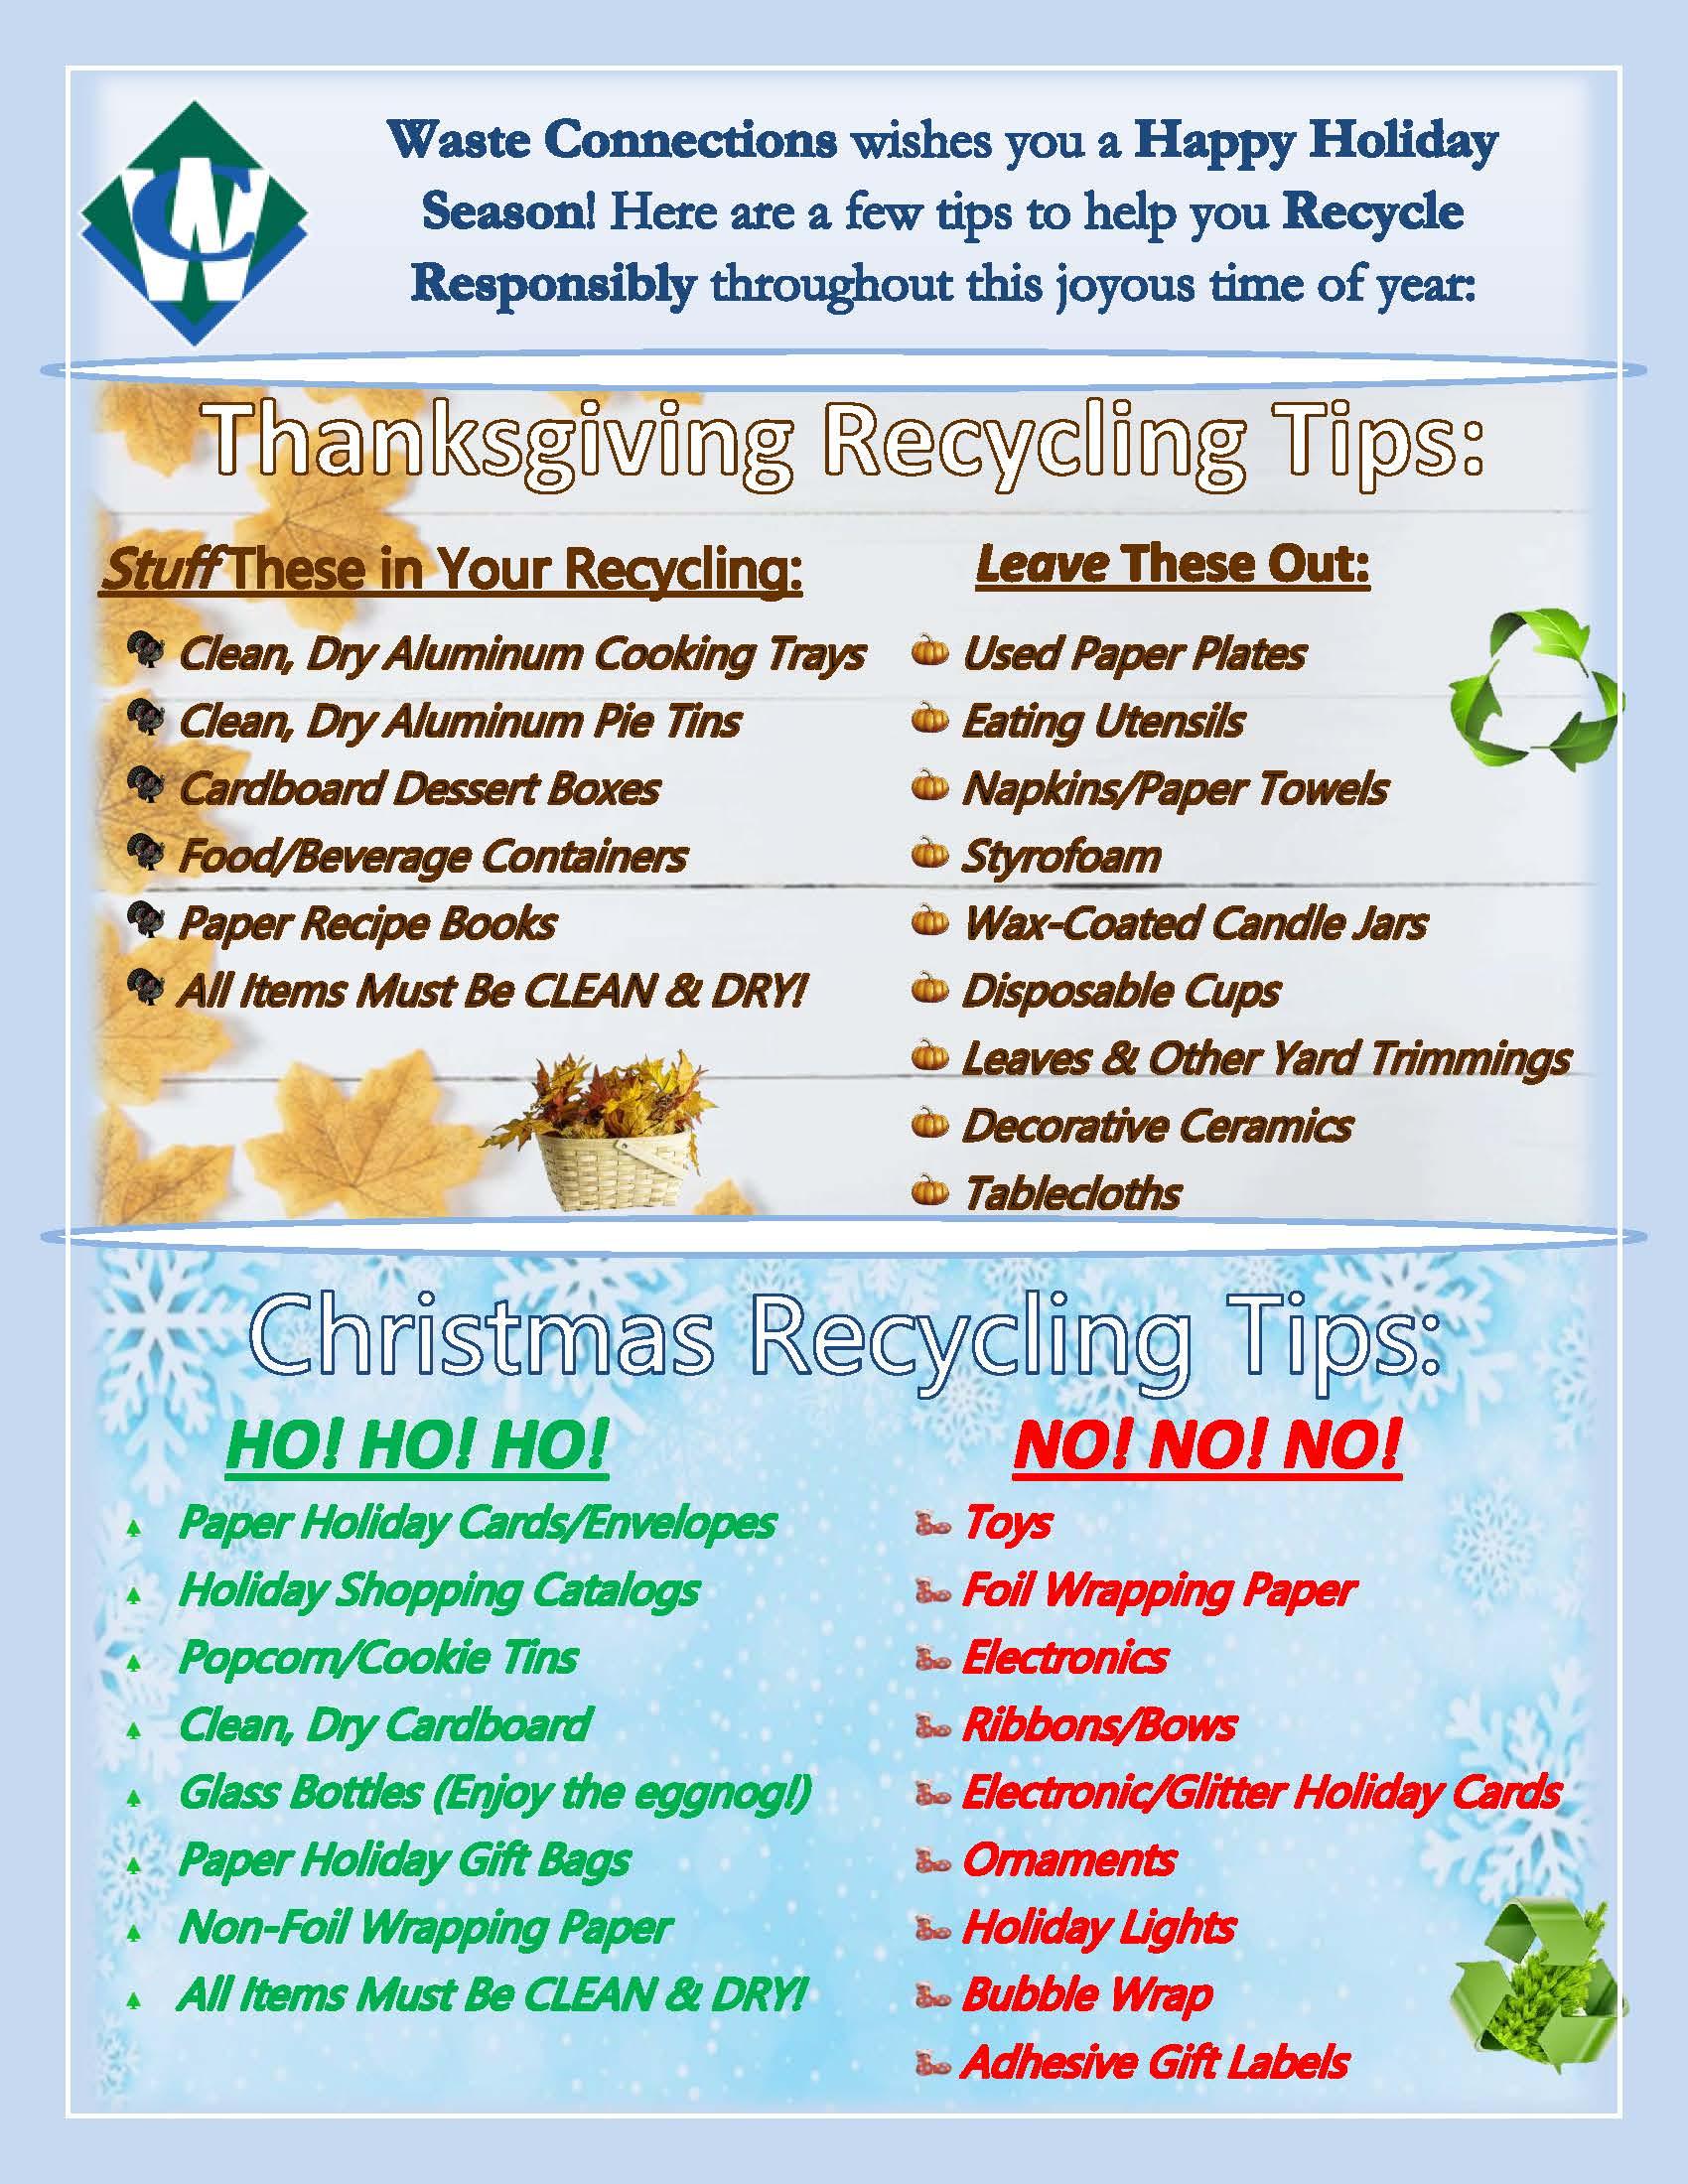 Waste Connections Holiday Recycling Guidance